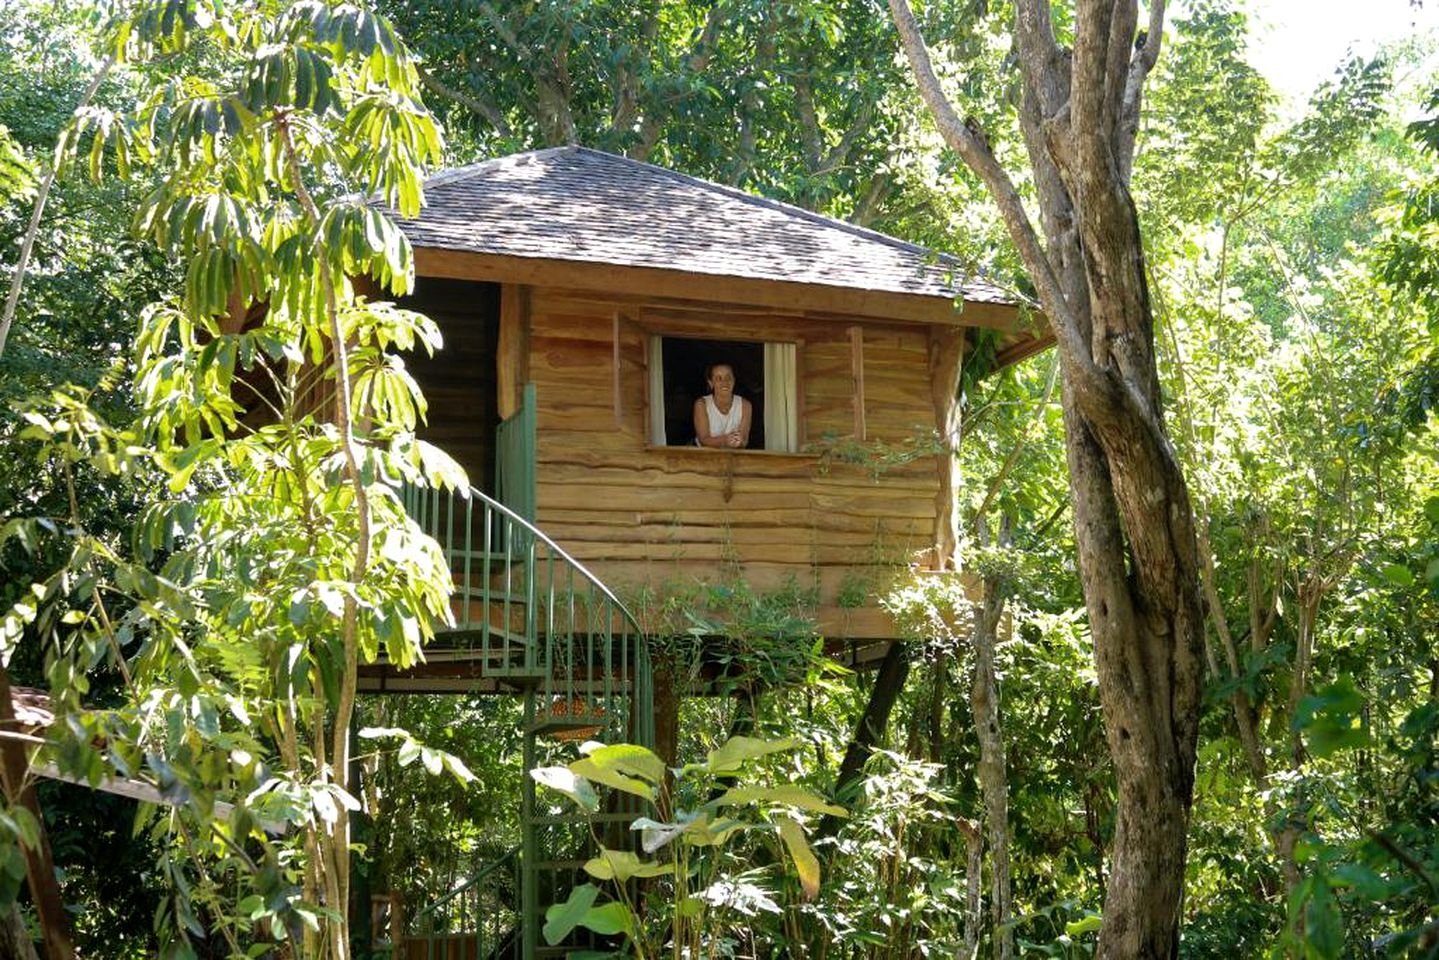 This tree house is ideal for romantic getaways in Bali